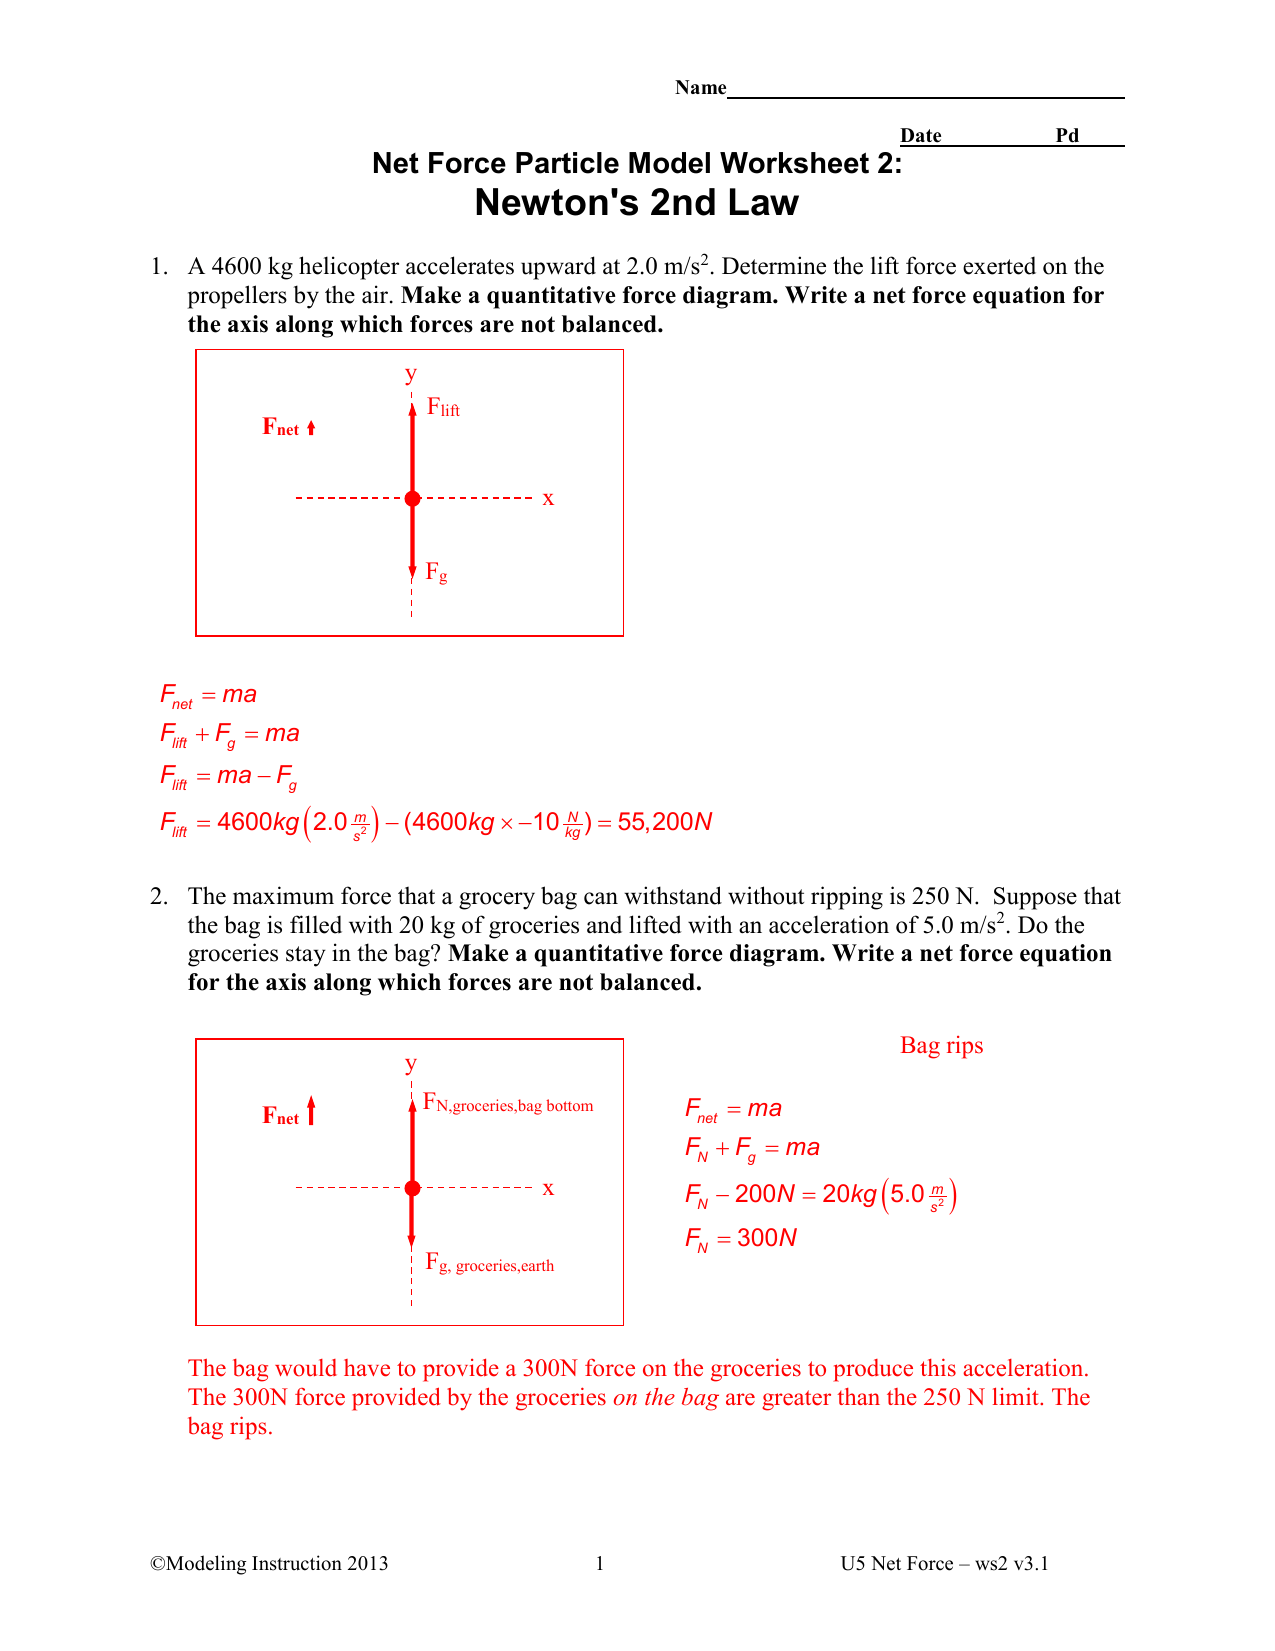 Net Force Particle Model Worksheet 2 Newton S 2nd Law Answers